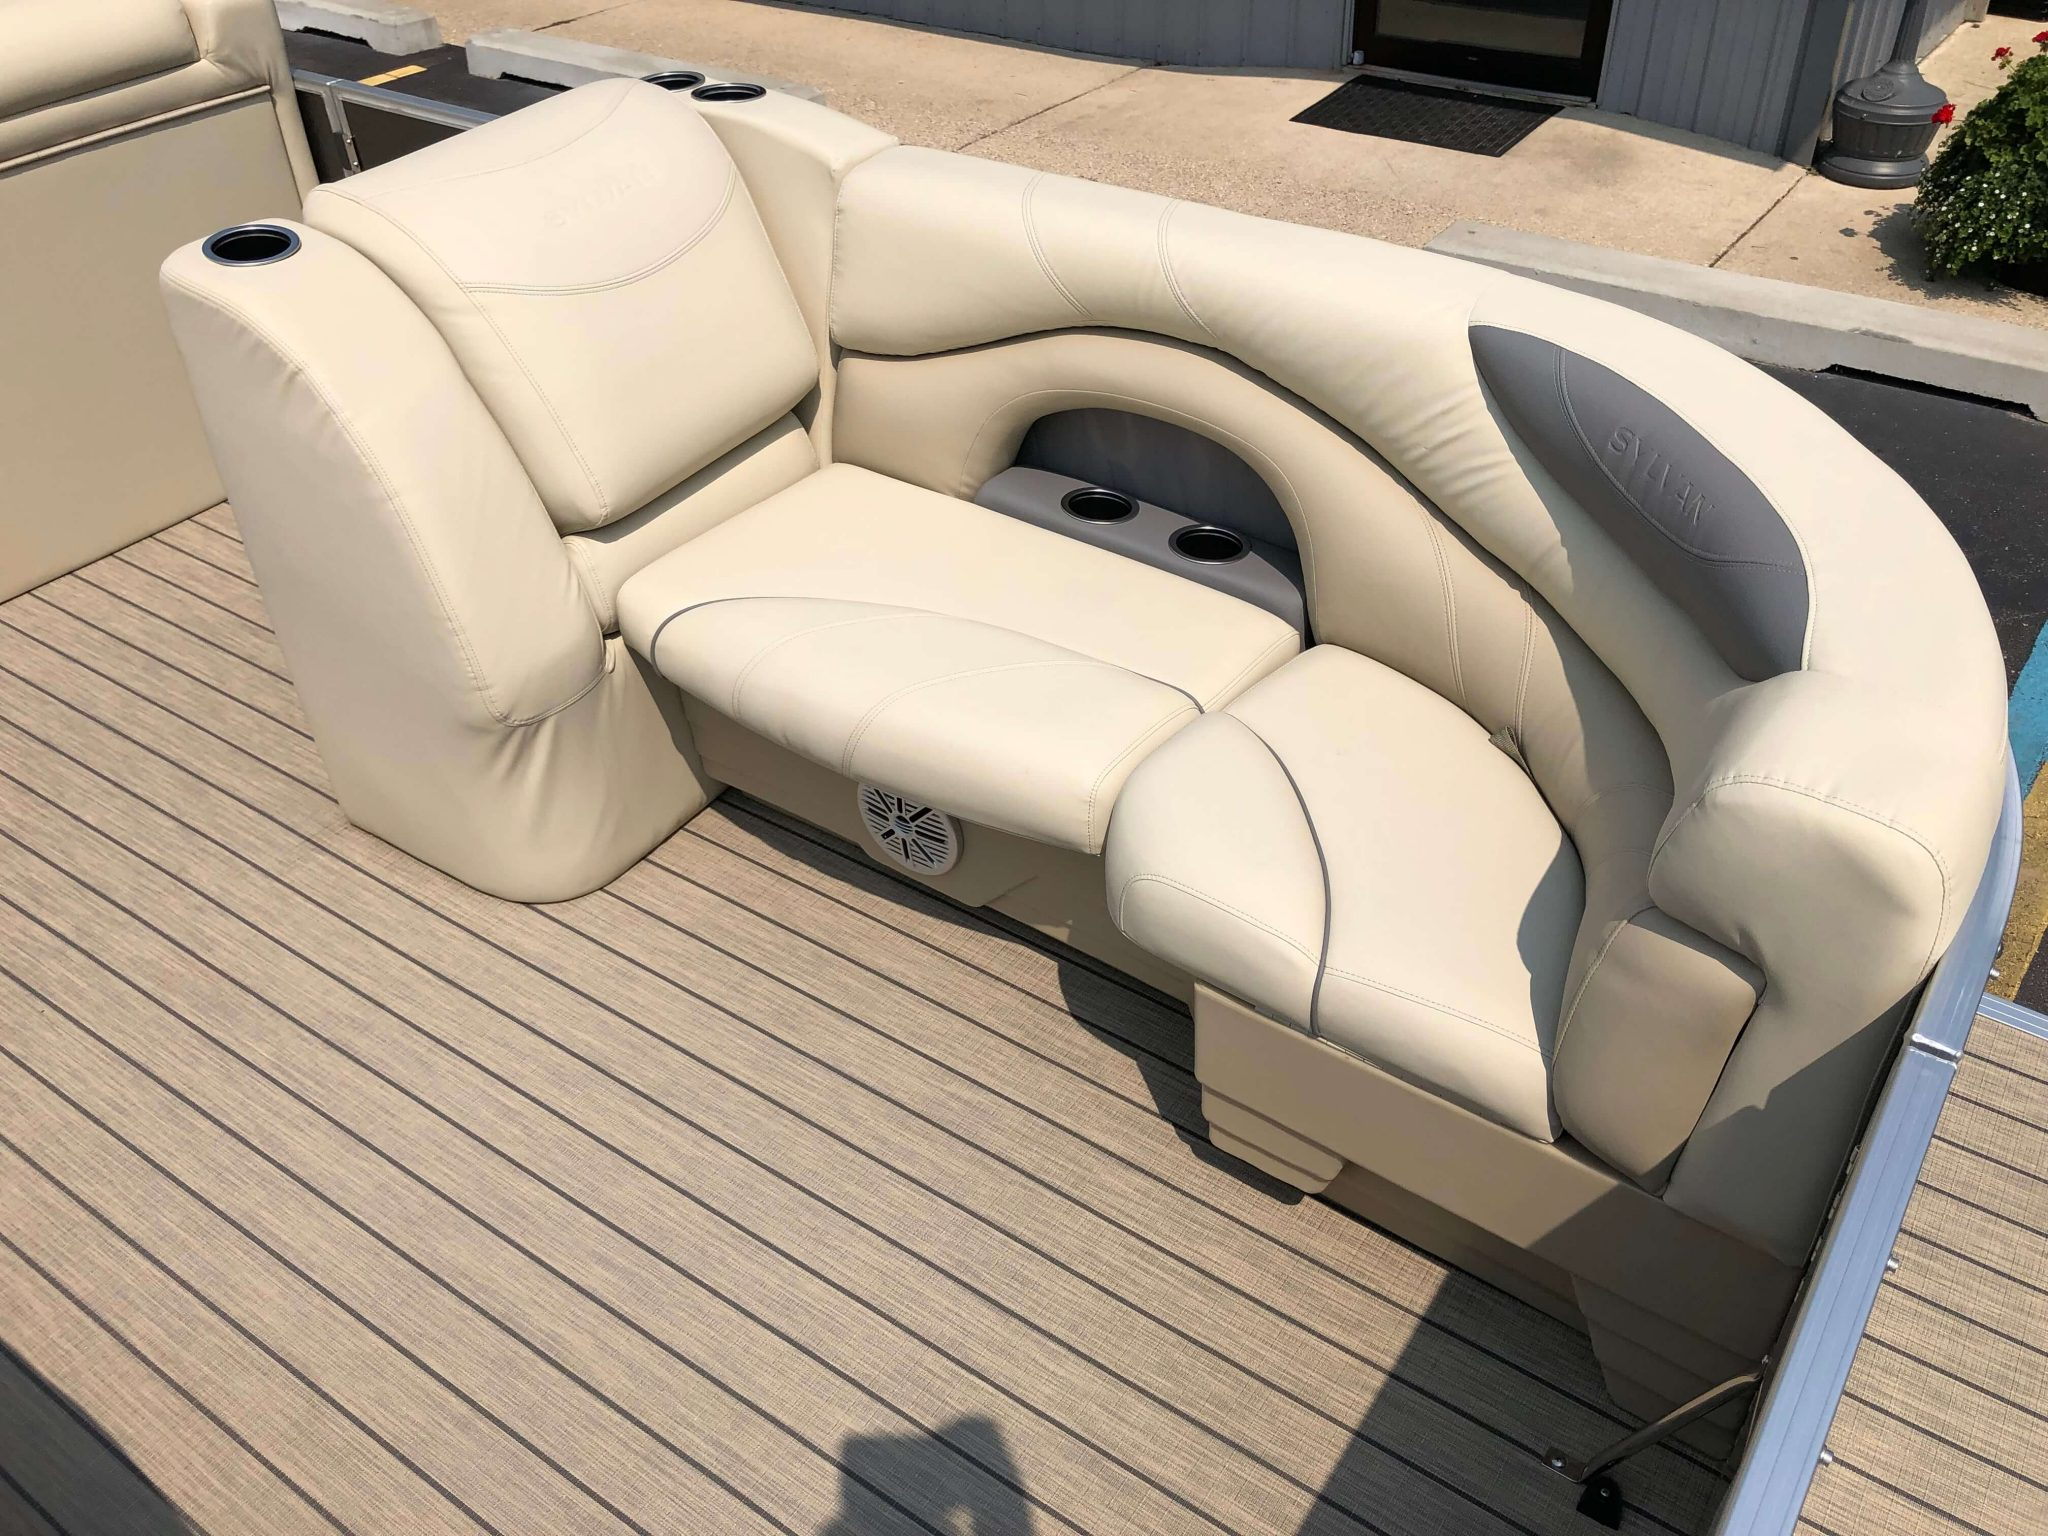 2019 Sylvan 8522 Cruise Carbon Pontoon Boat Seating 2